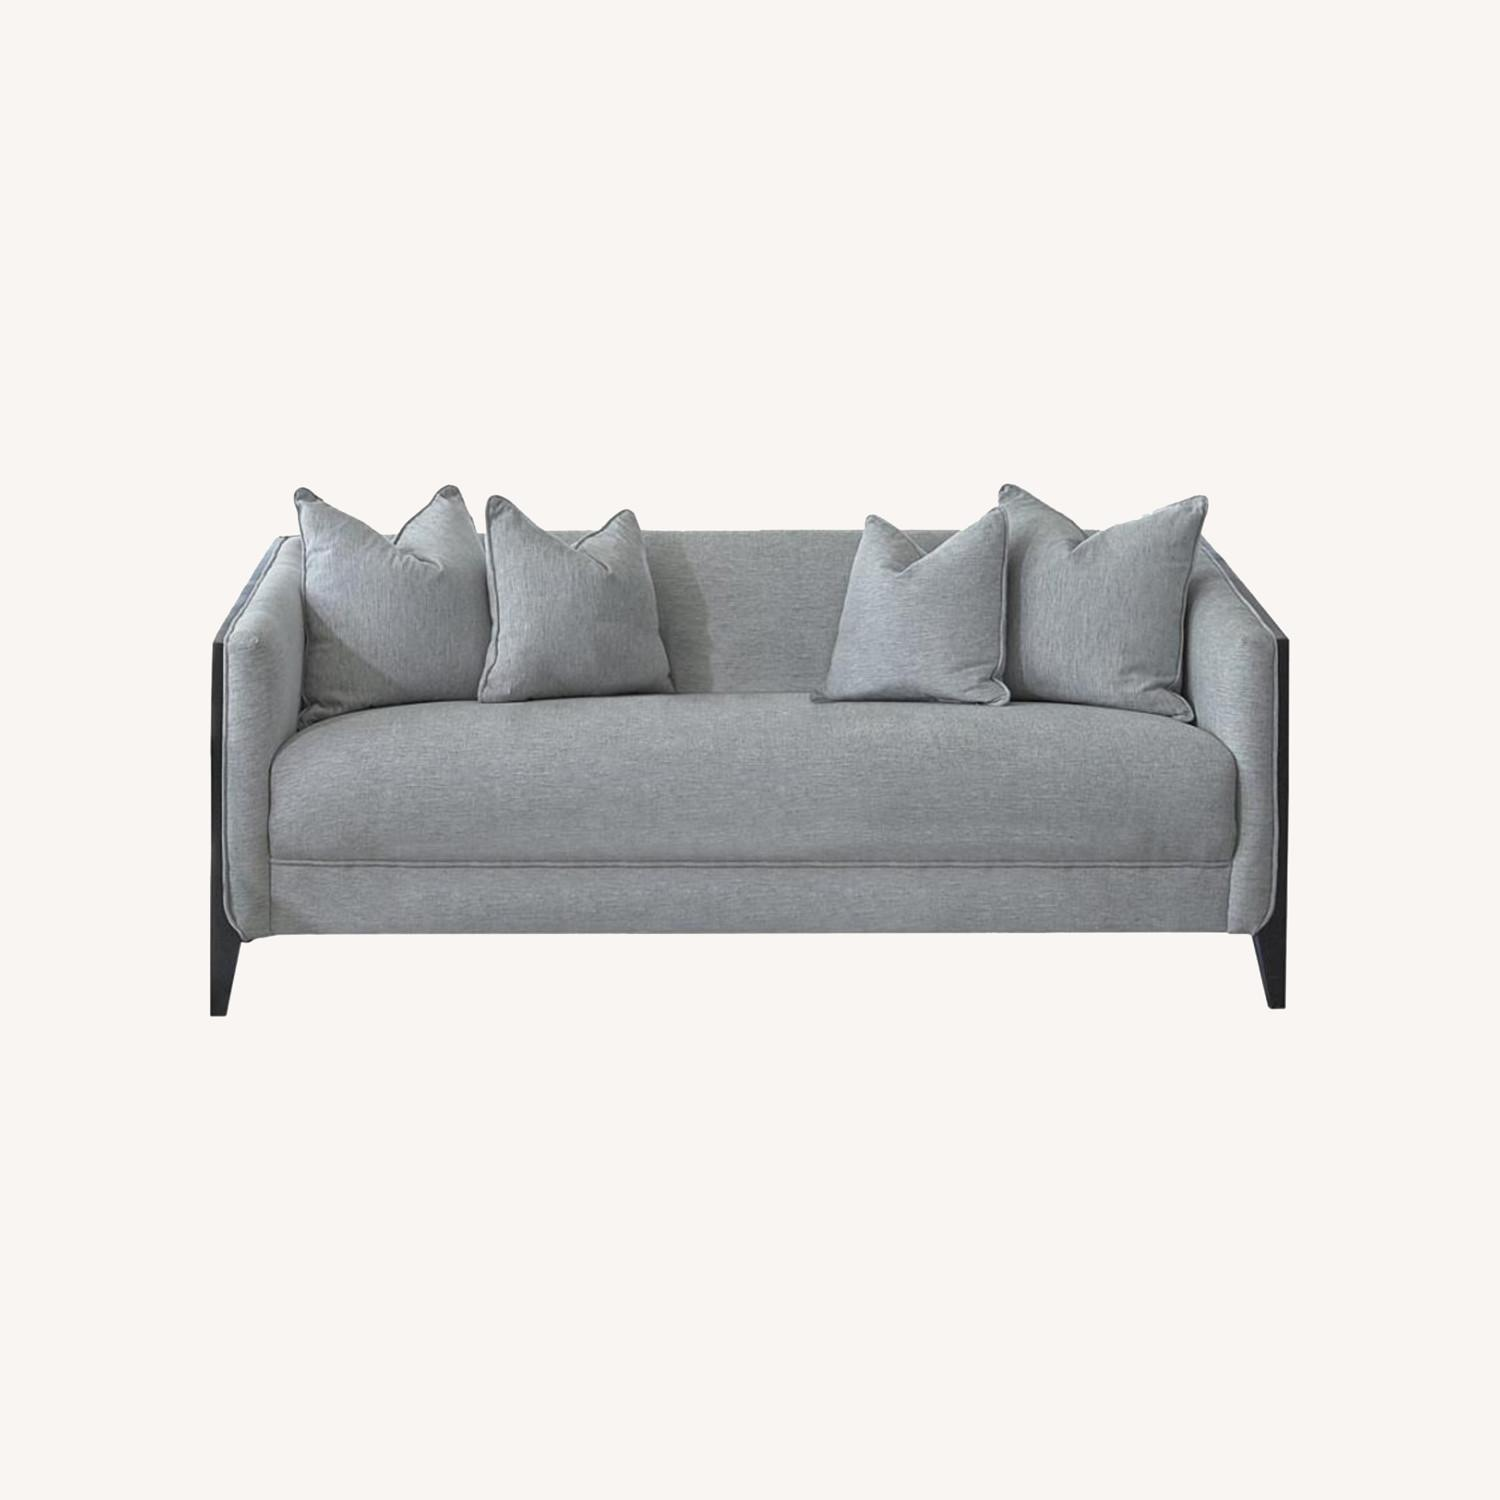 Sofa In Dove Grey Low Pile Chenille Upholstery - image-3